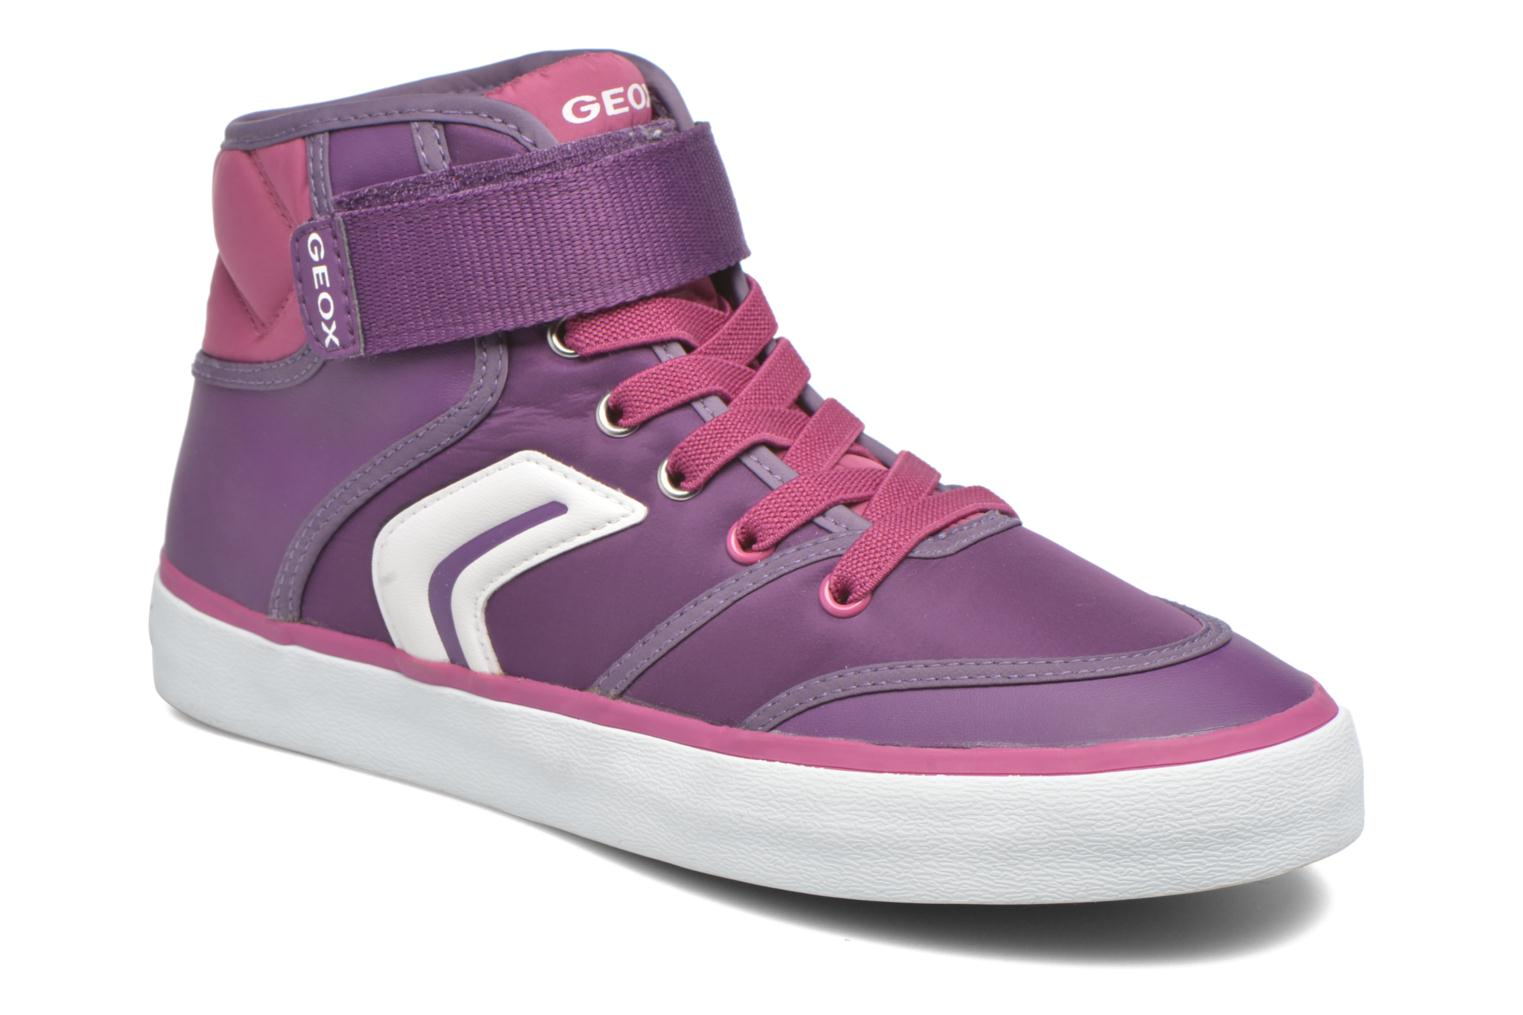 Baskets Geox JR Ciak Girl J5404A0 Violet vue détail/paire